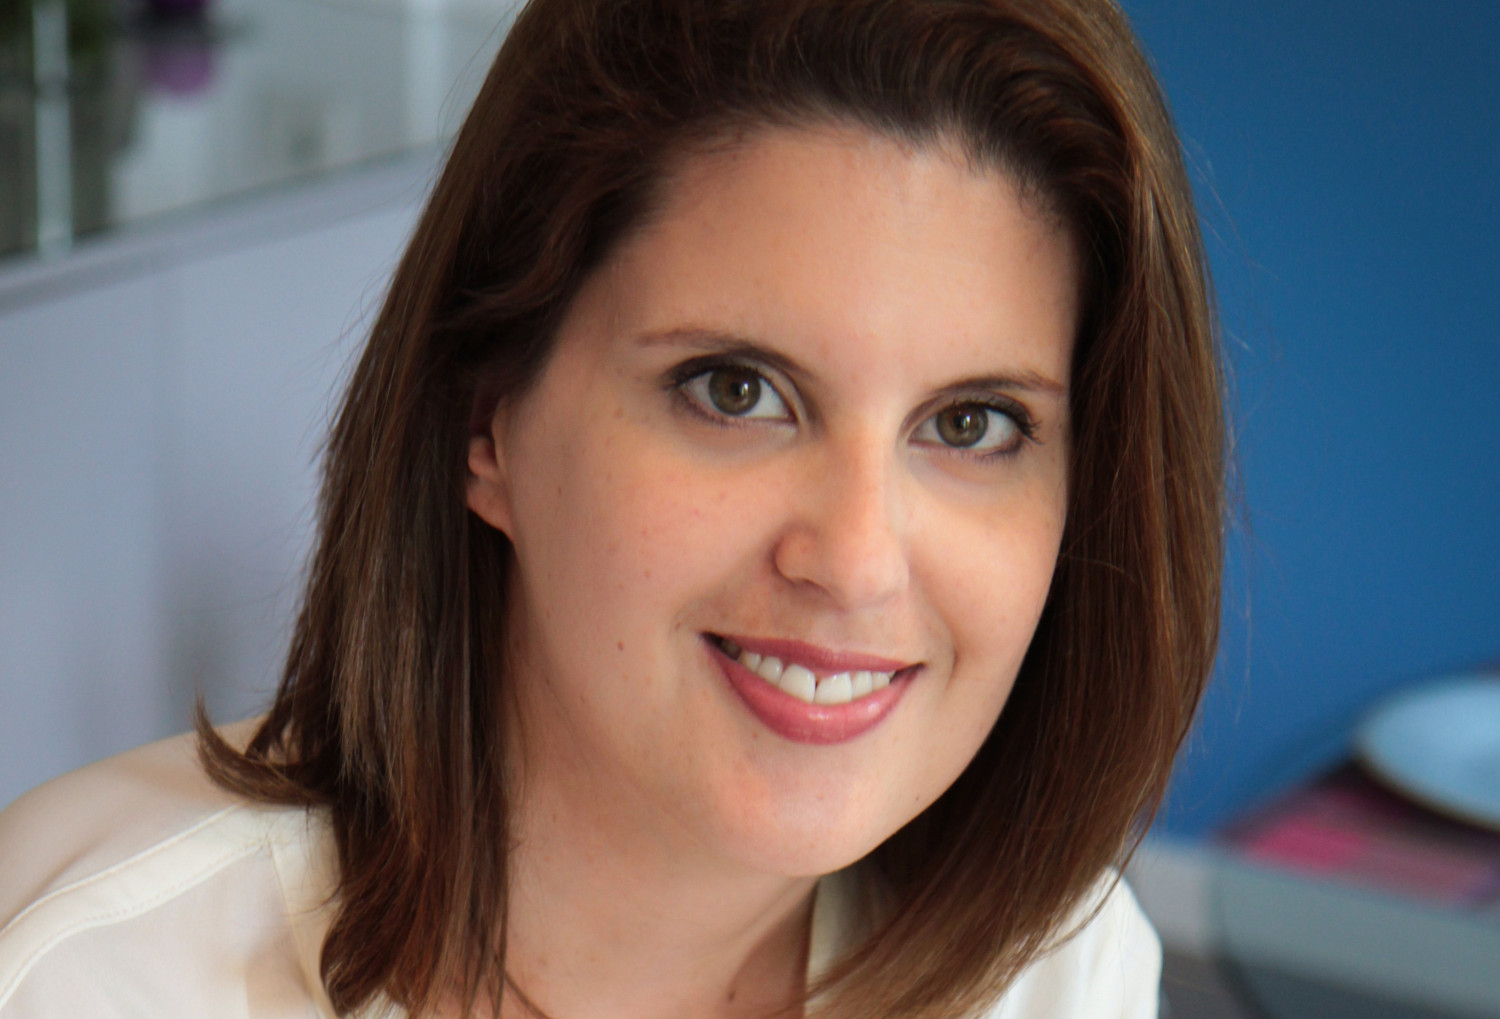 Laurence Garrisson